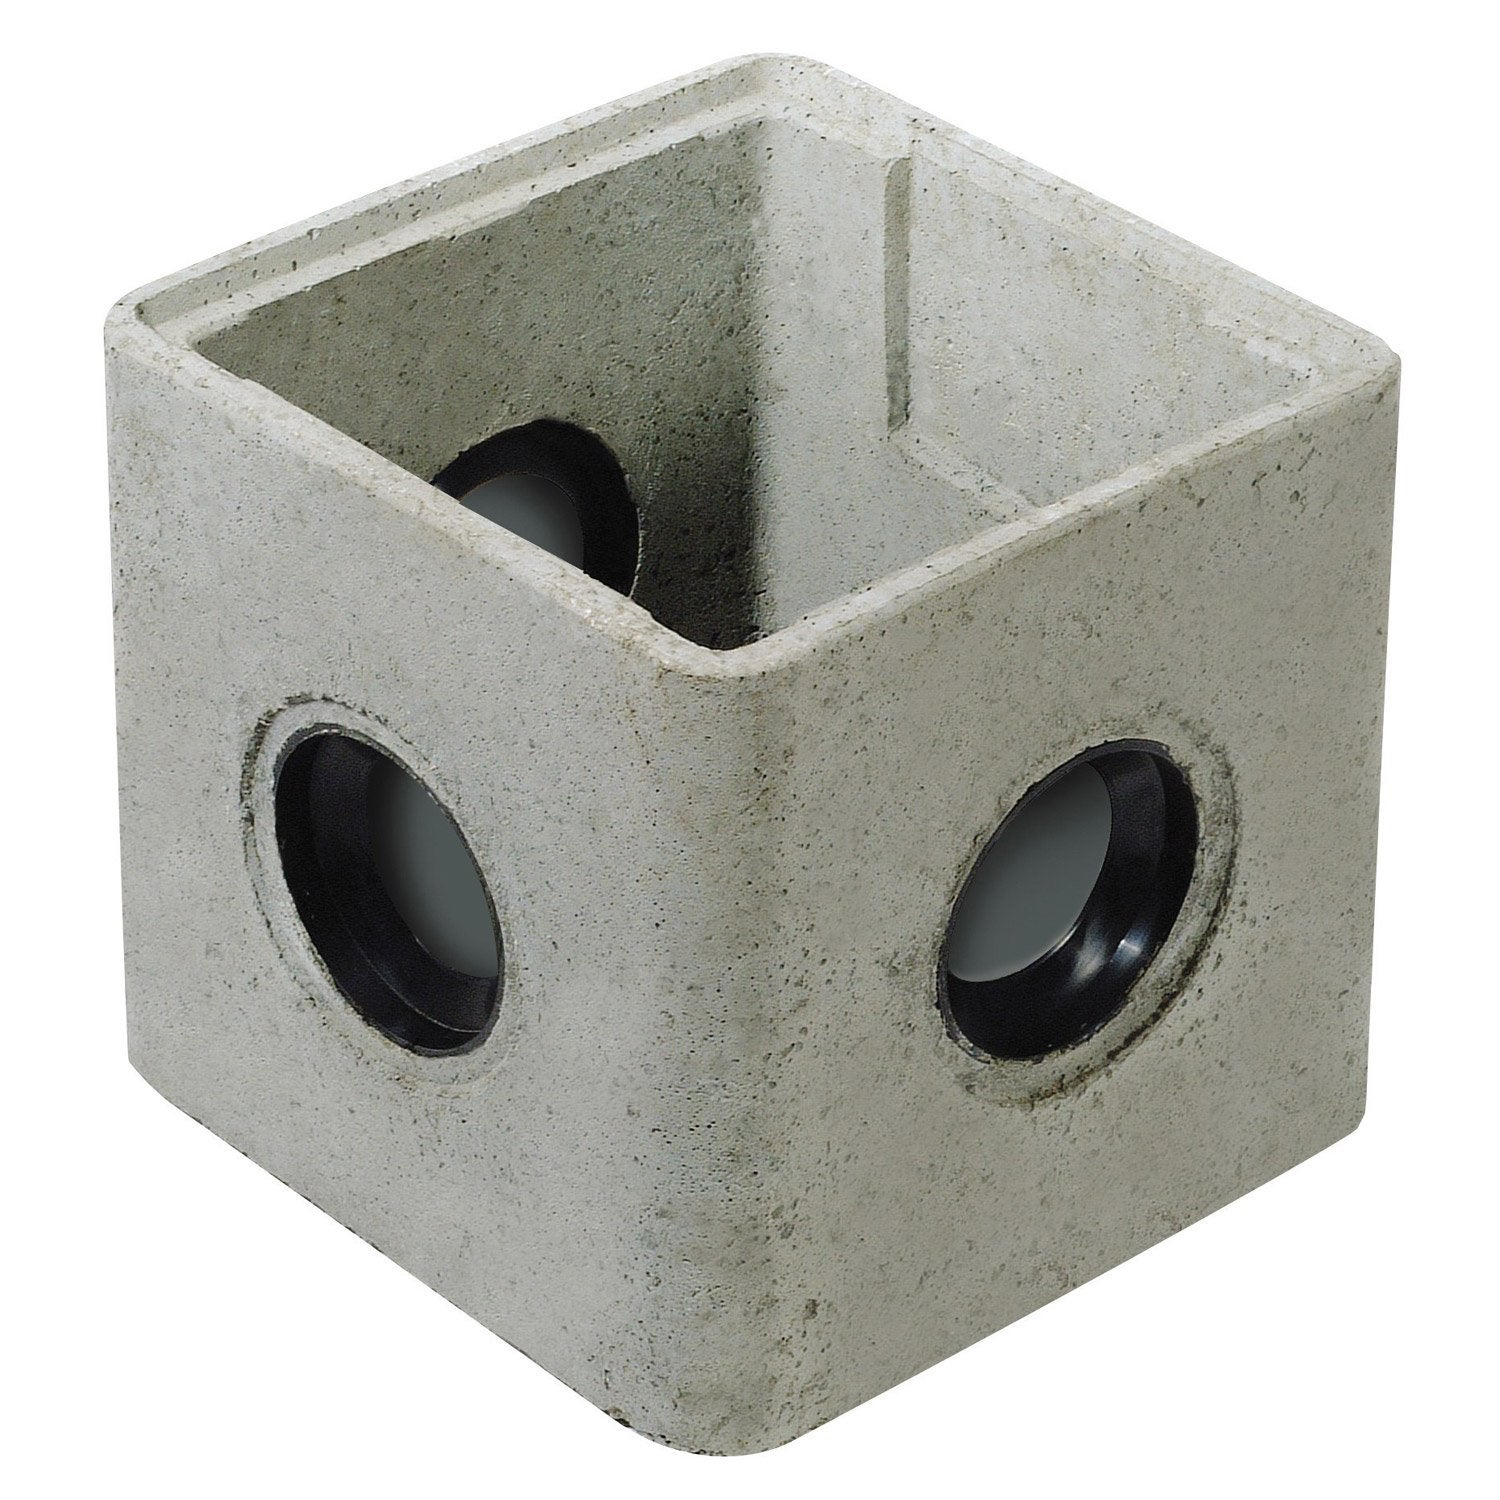 Regard joints incorpor s rmj25 b ton x mm - Beton decoratif leroy merlin ...